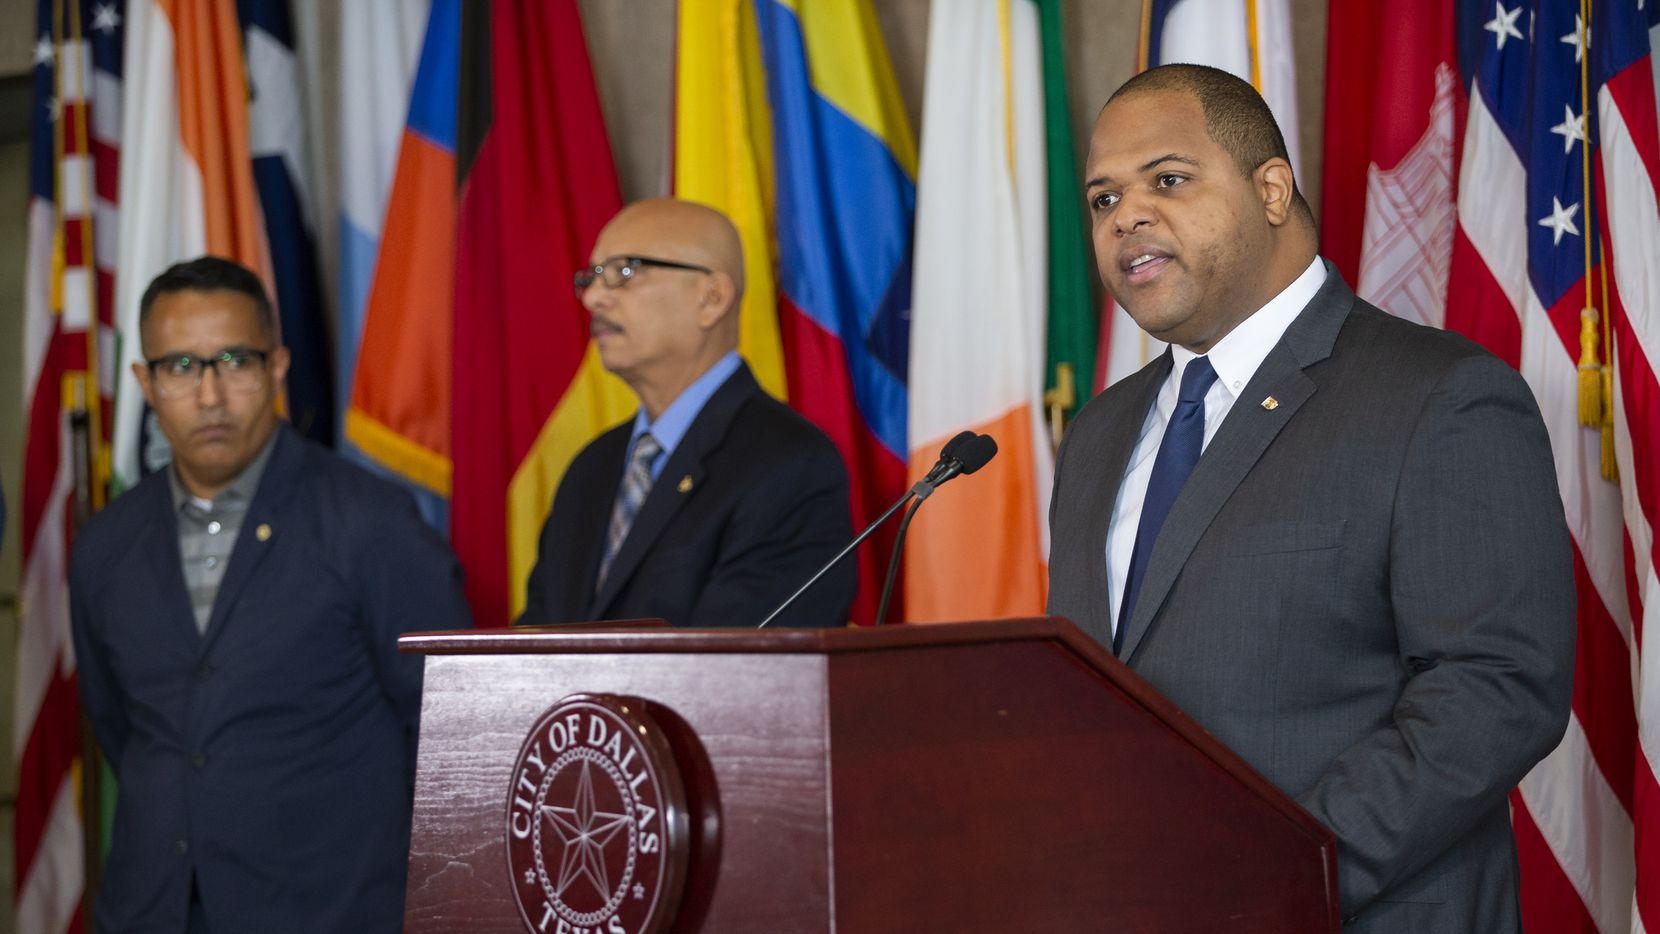 Mayor Eric Johnson speaks about declaring a local state of disaster during a press conference at City Hall on March 13, 2020 in Dallas. Mayor Eric Johnson on Thursday, March 12, issued a proclamation declaring a local state of disaster in response to evidence of community spread of the new coronavirus within the City of Dallas.